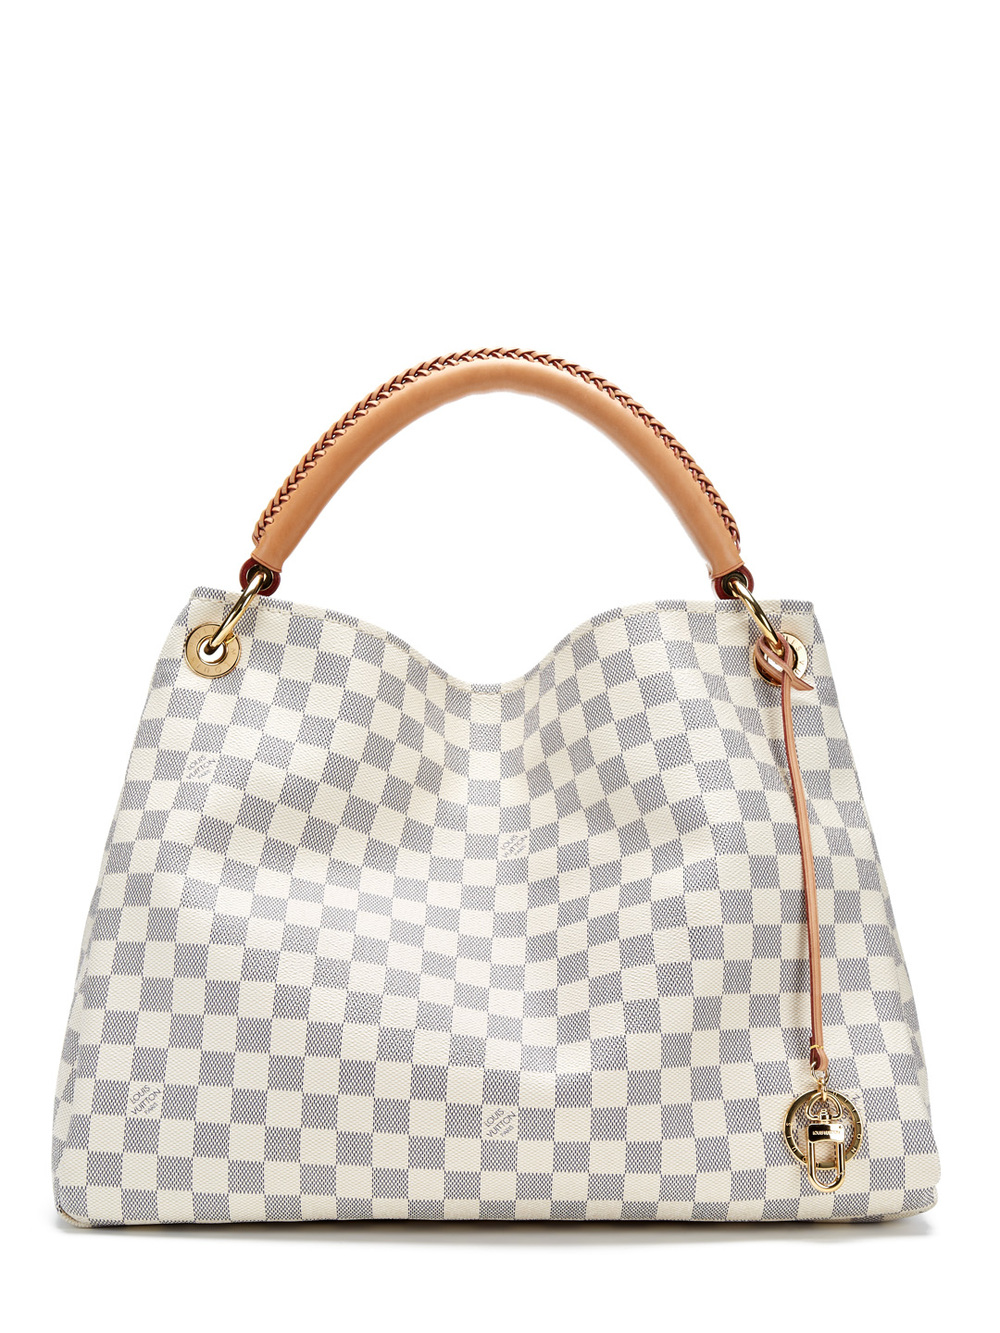 image_1_08_louis_vuitton_lvohbd0220142_cream_grey_1036027850_a_055.jpg